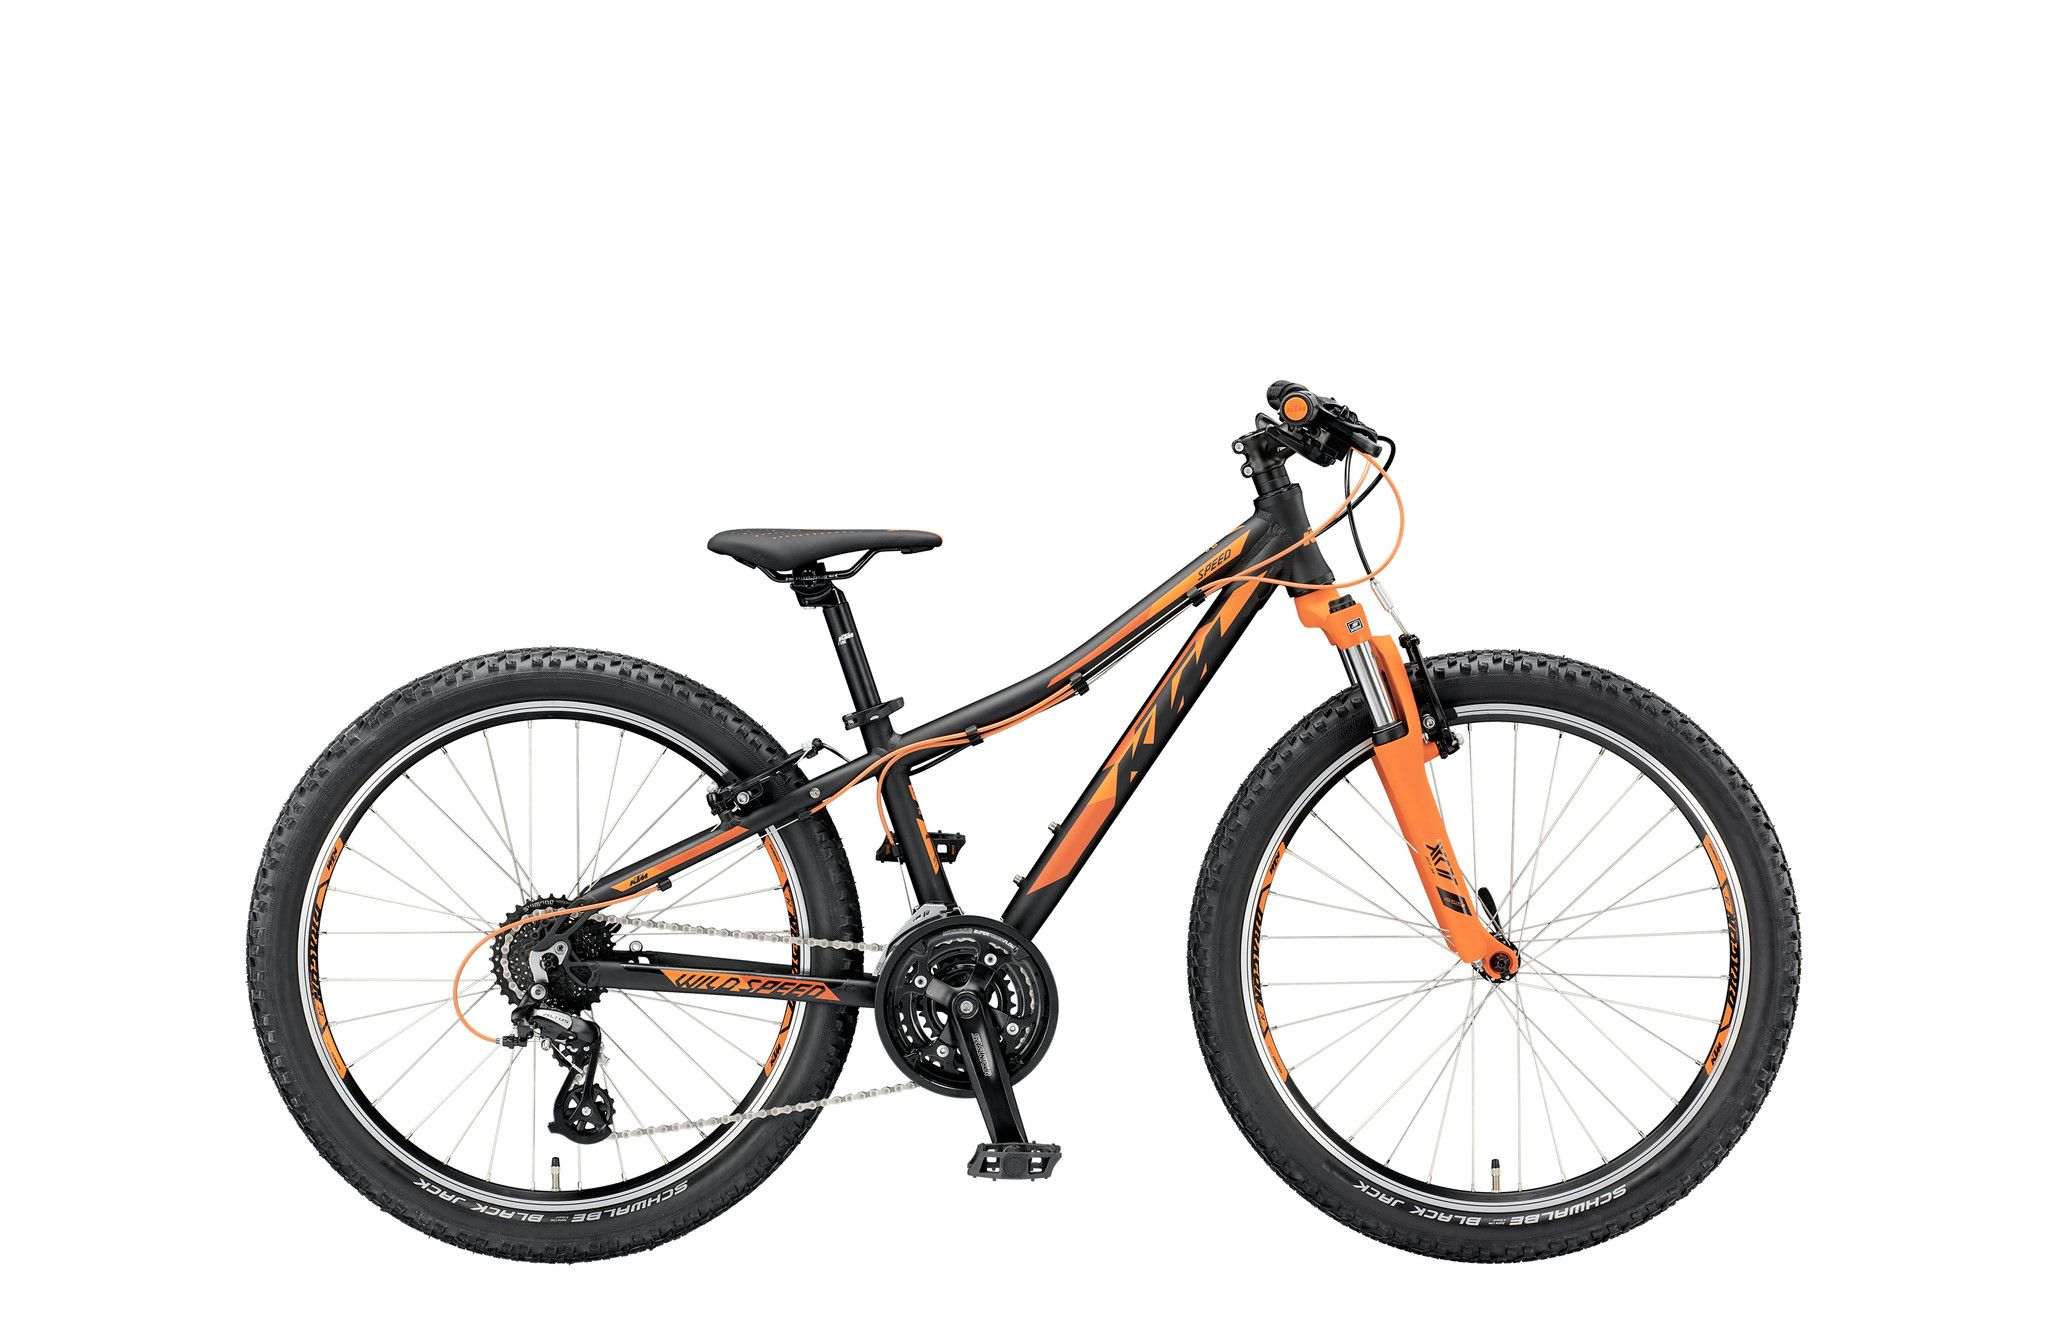 BICICLETTA KTM WILD SPEED 24 V-BRAKE